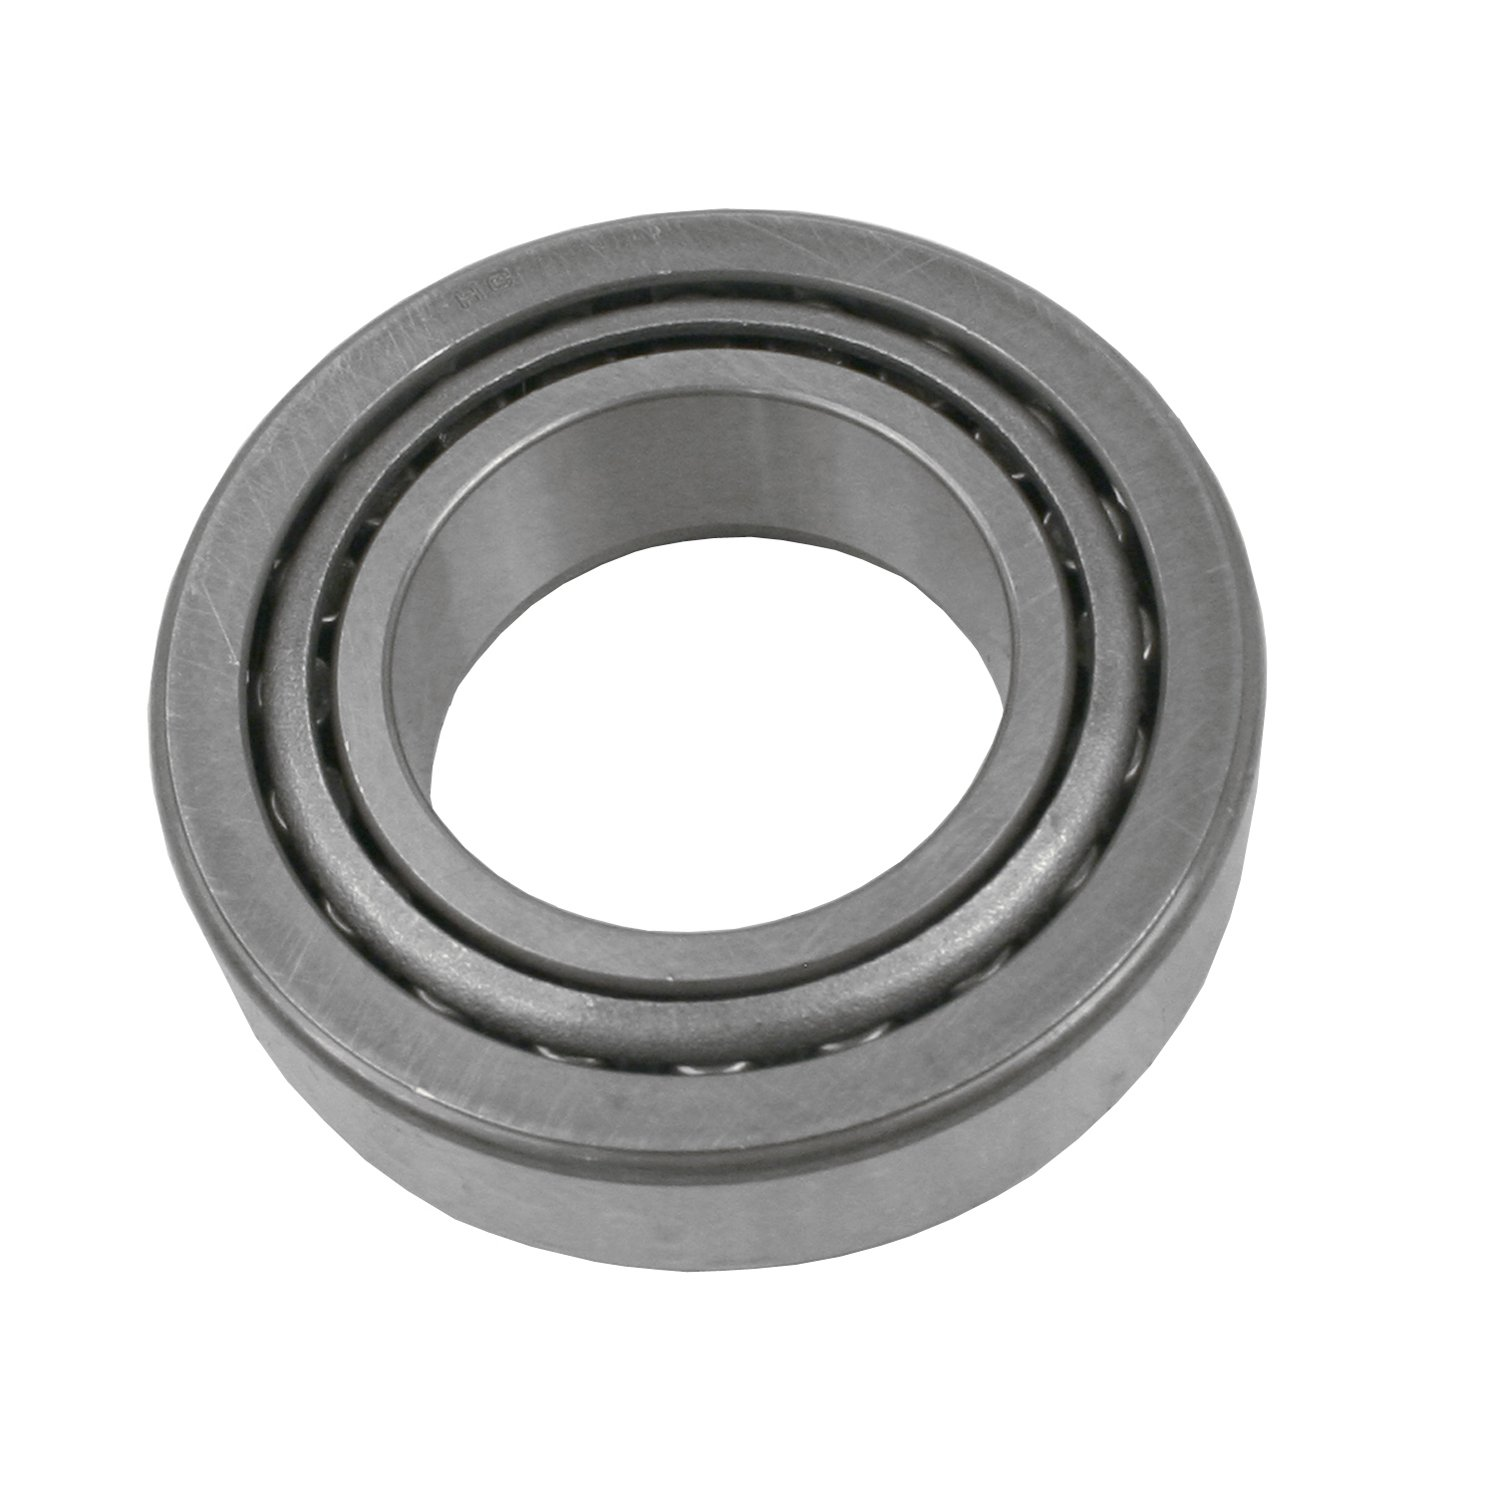 AK RW508DR Axle Bearing for Ford 9 Differential Yukon Gear /& Axle